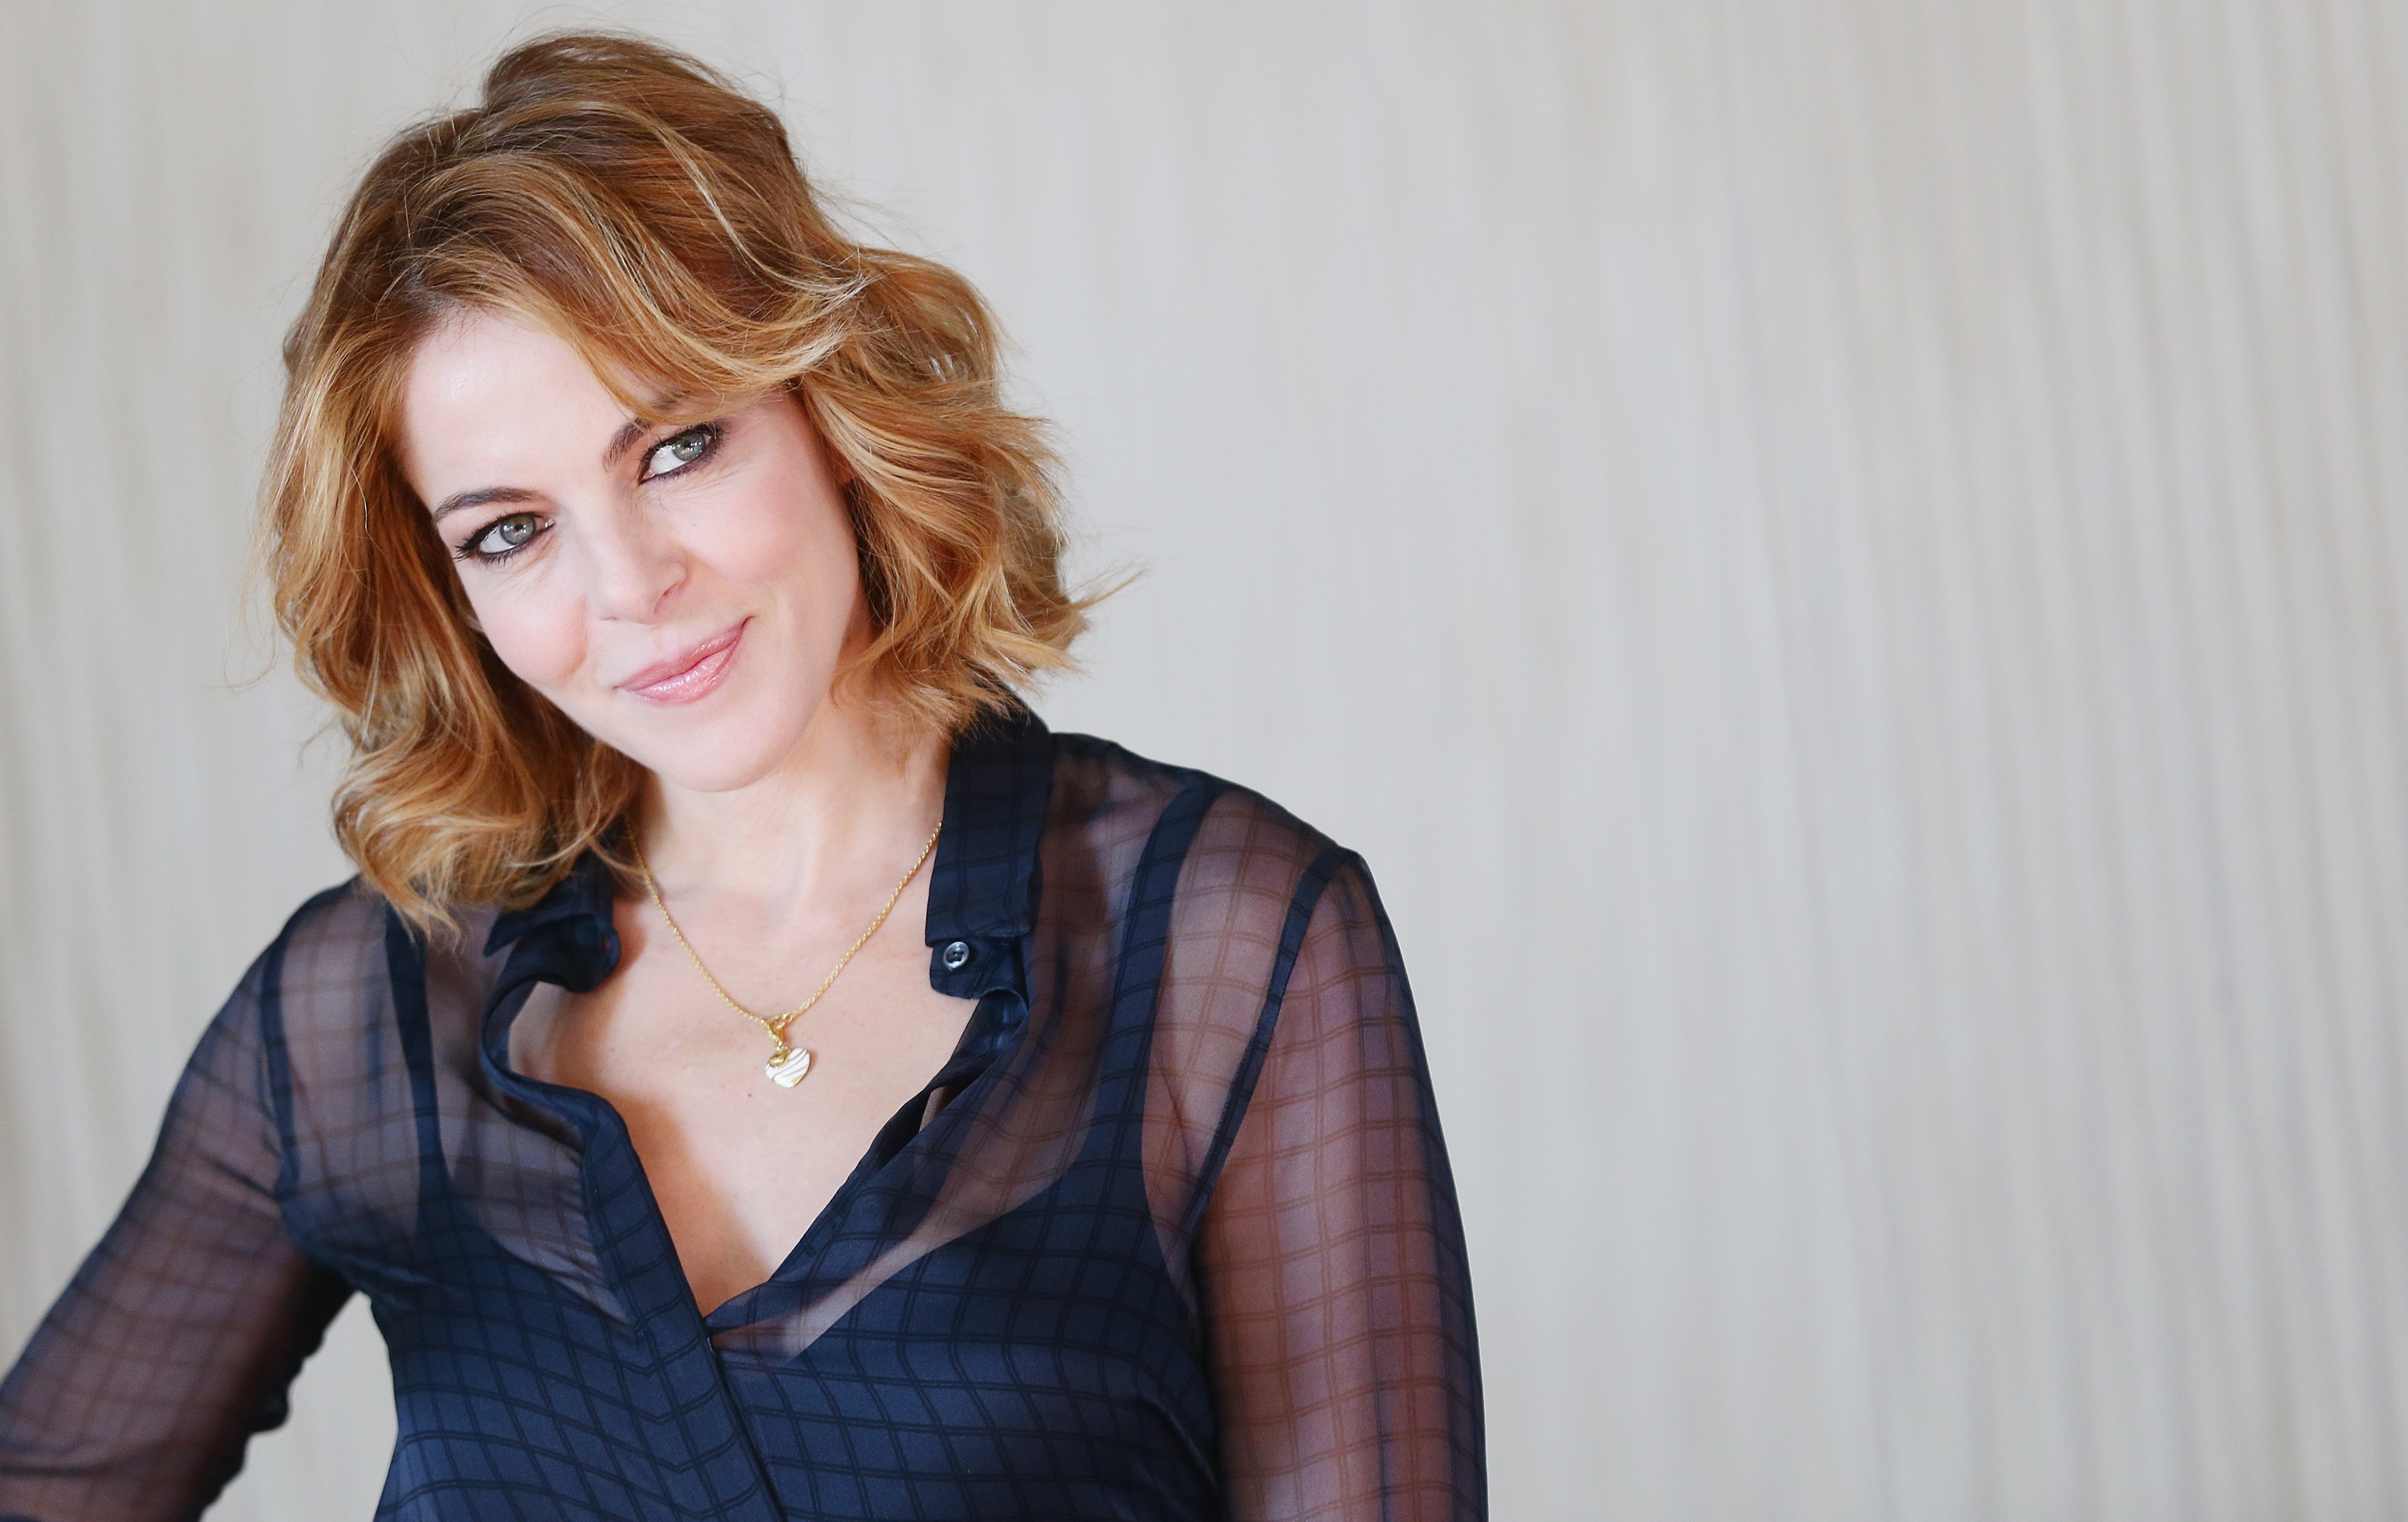 Claudia Gerini High Quality Wallpapers